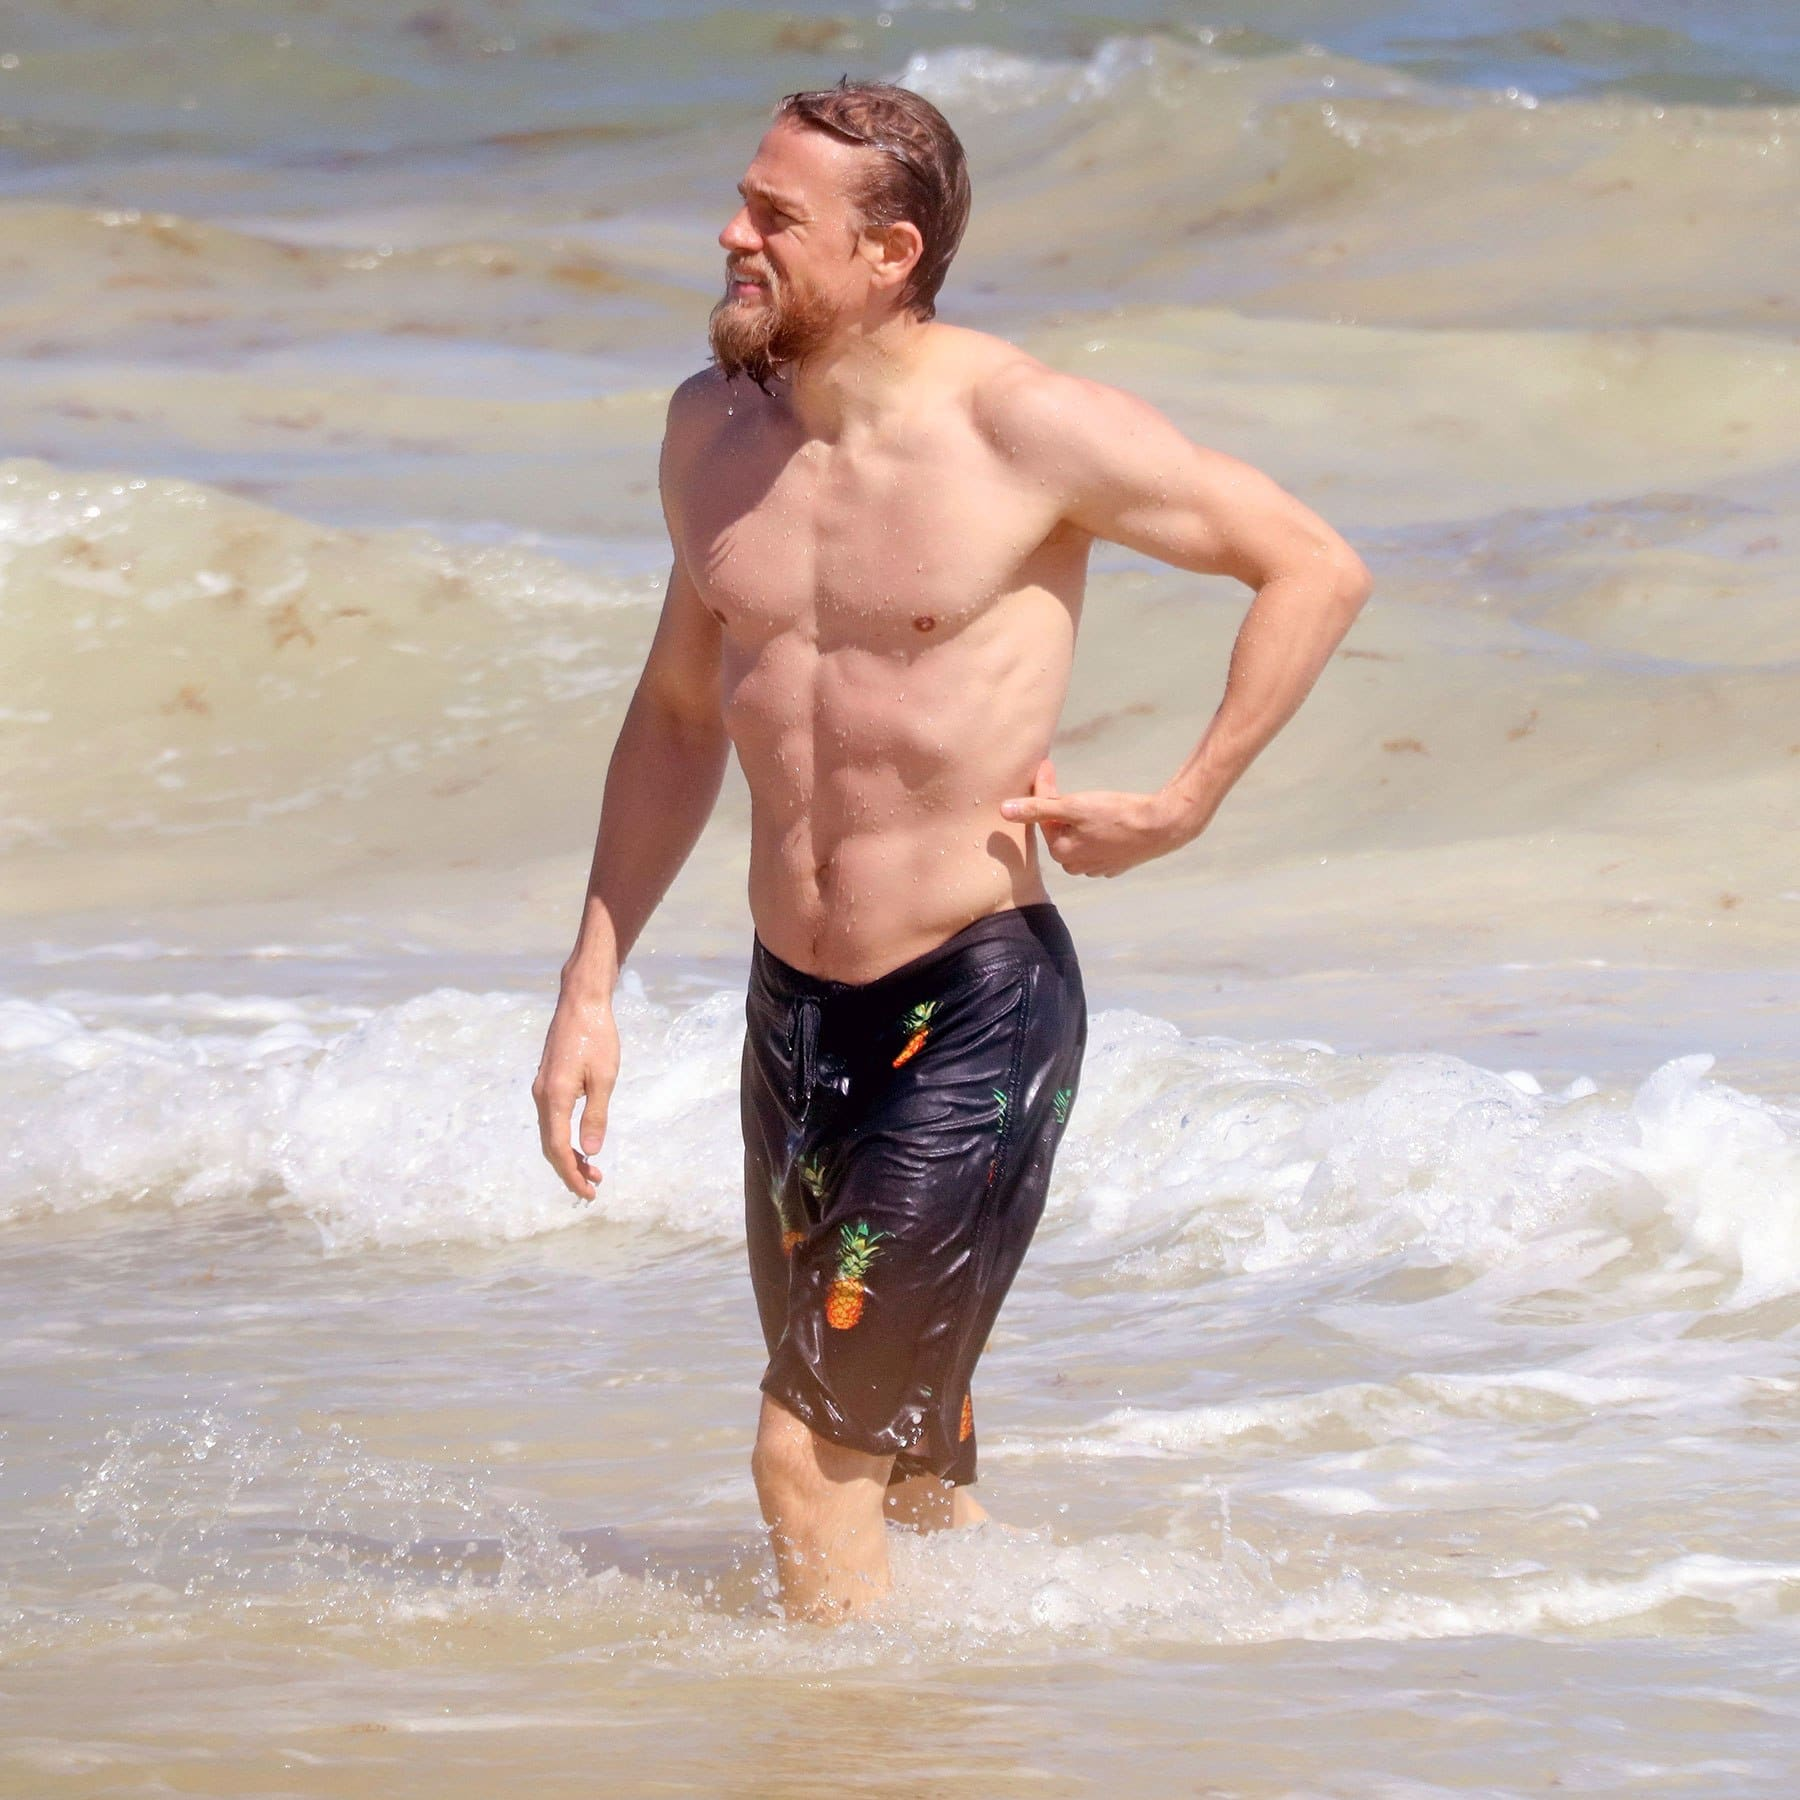 Charlie Hunnam shirtless and wet